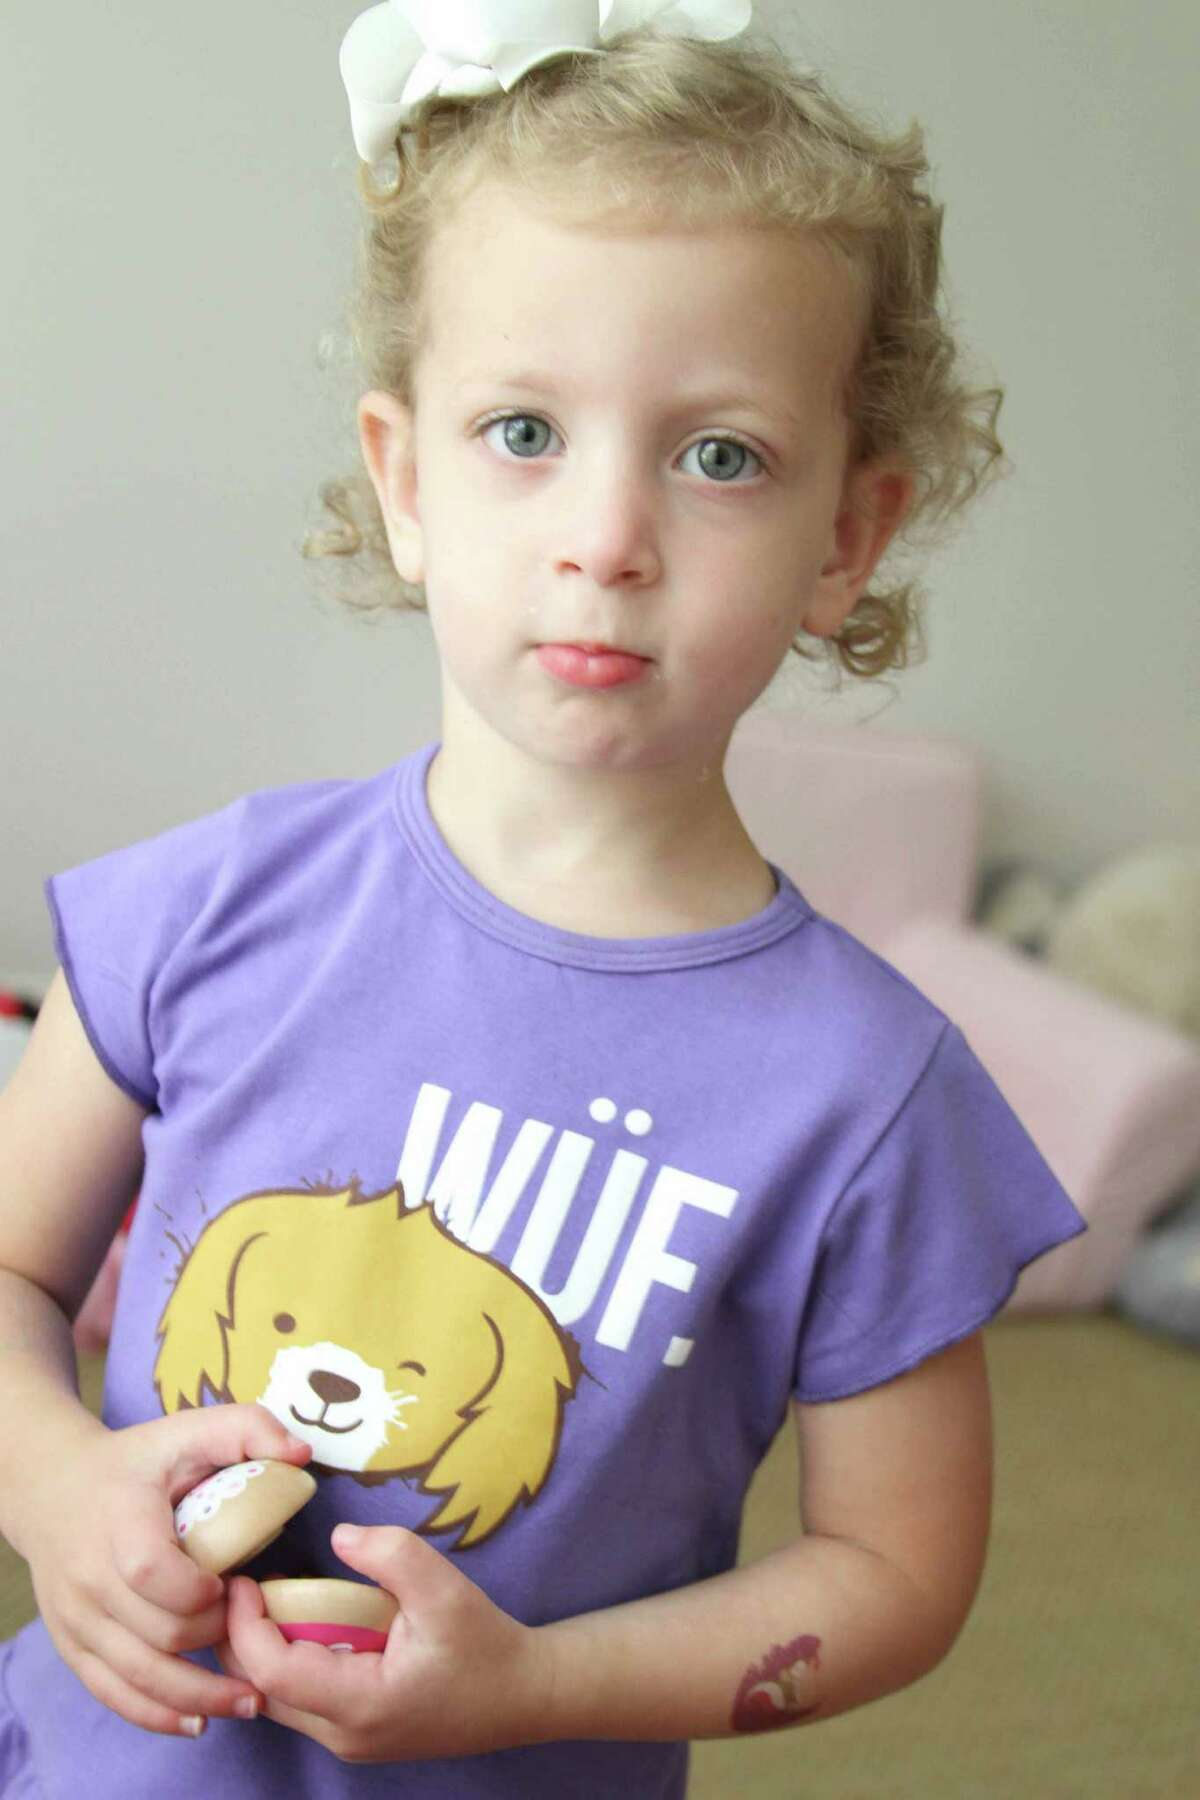 Madison Rose, 3, wears a Cuteheads top.